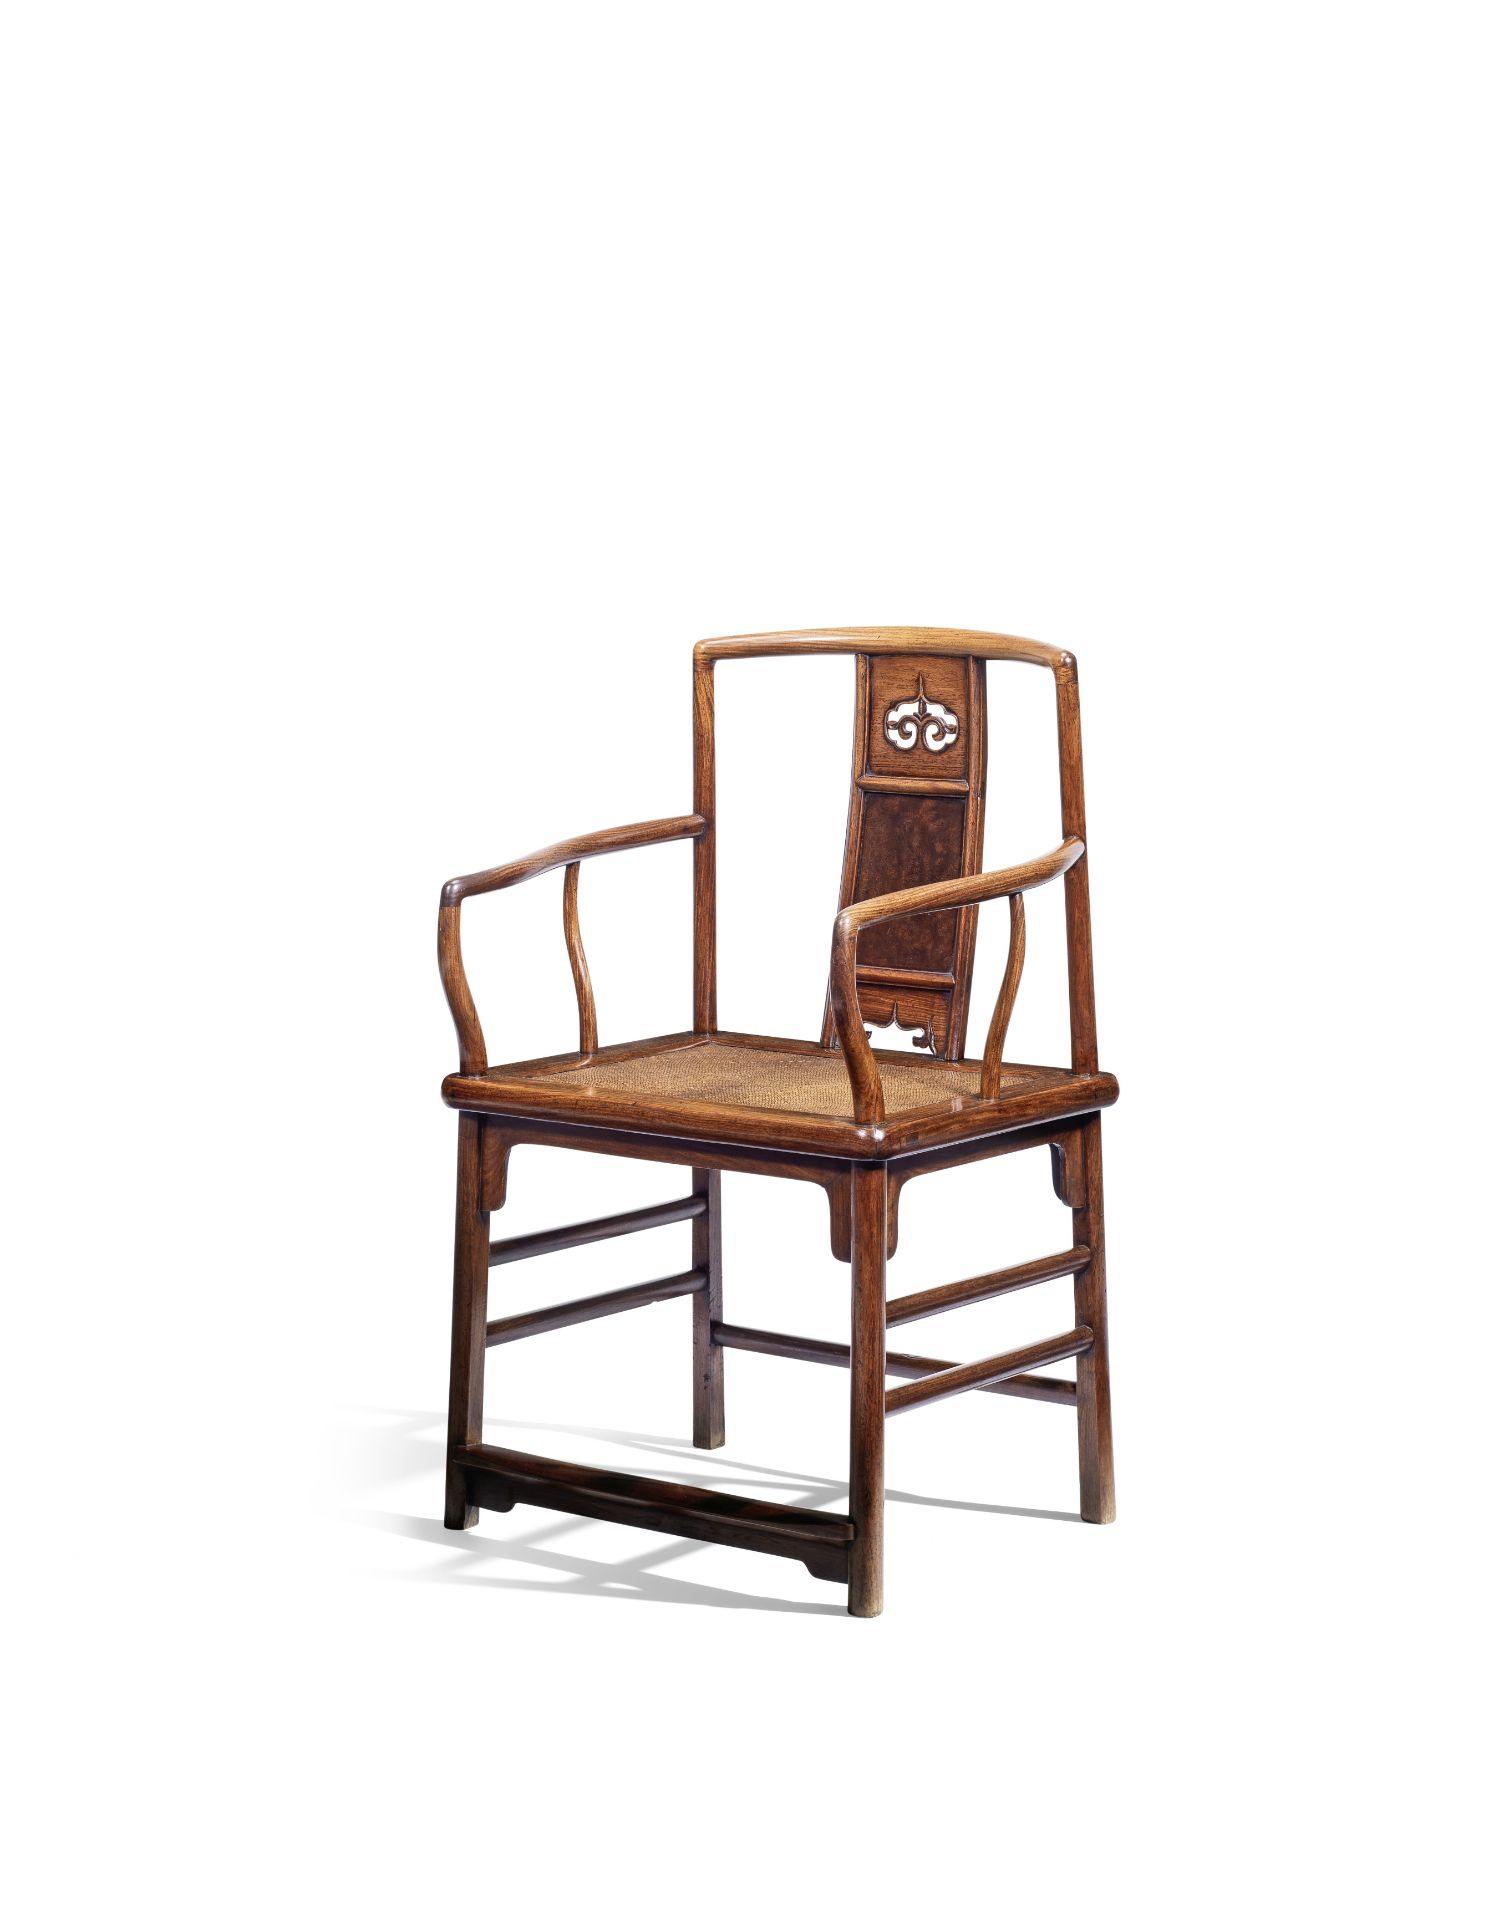 AN EXTREMELY RARE HUANGHUALI LOW-BACK CONTINUOUS YOKEBACK ARMCHAIR, NANGUANMAOYI 17th century